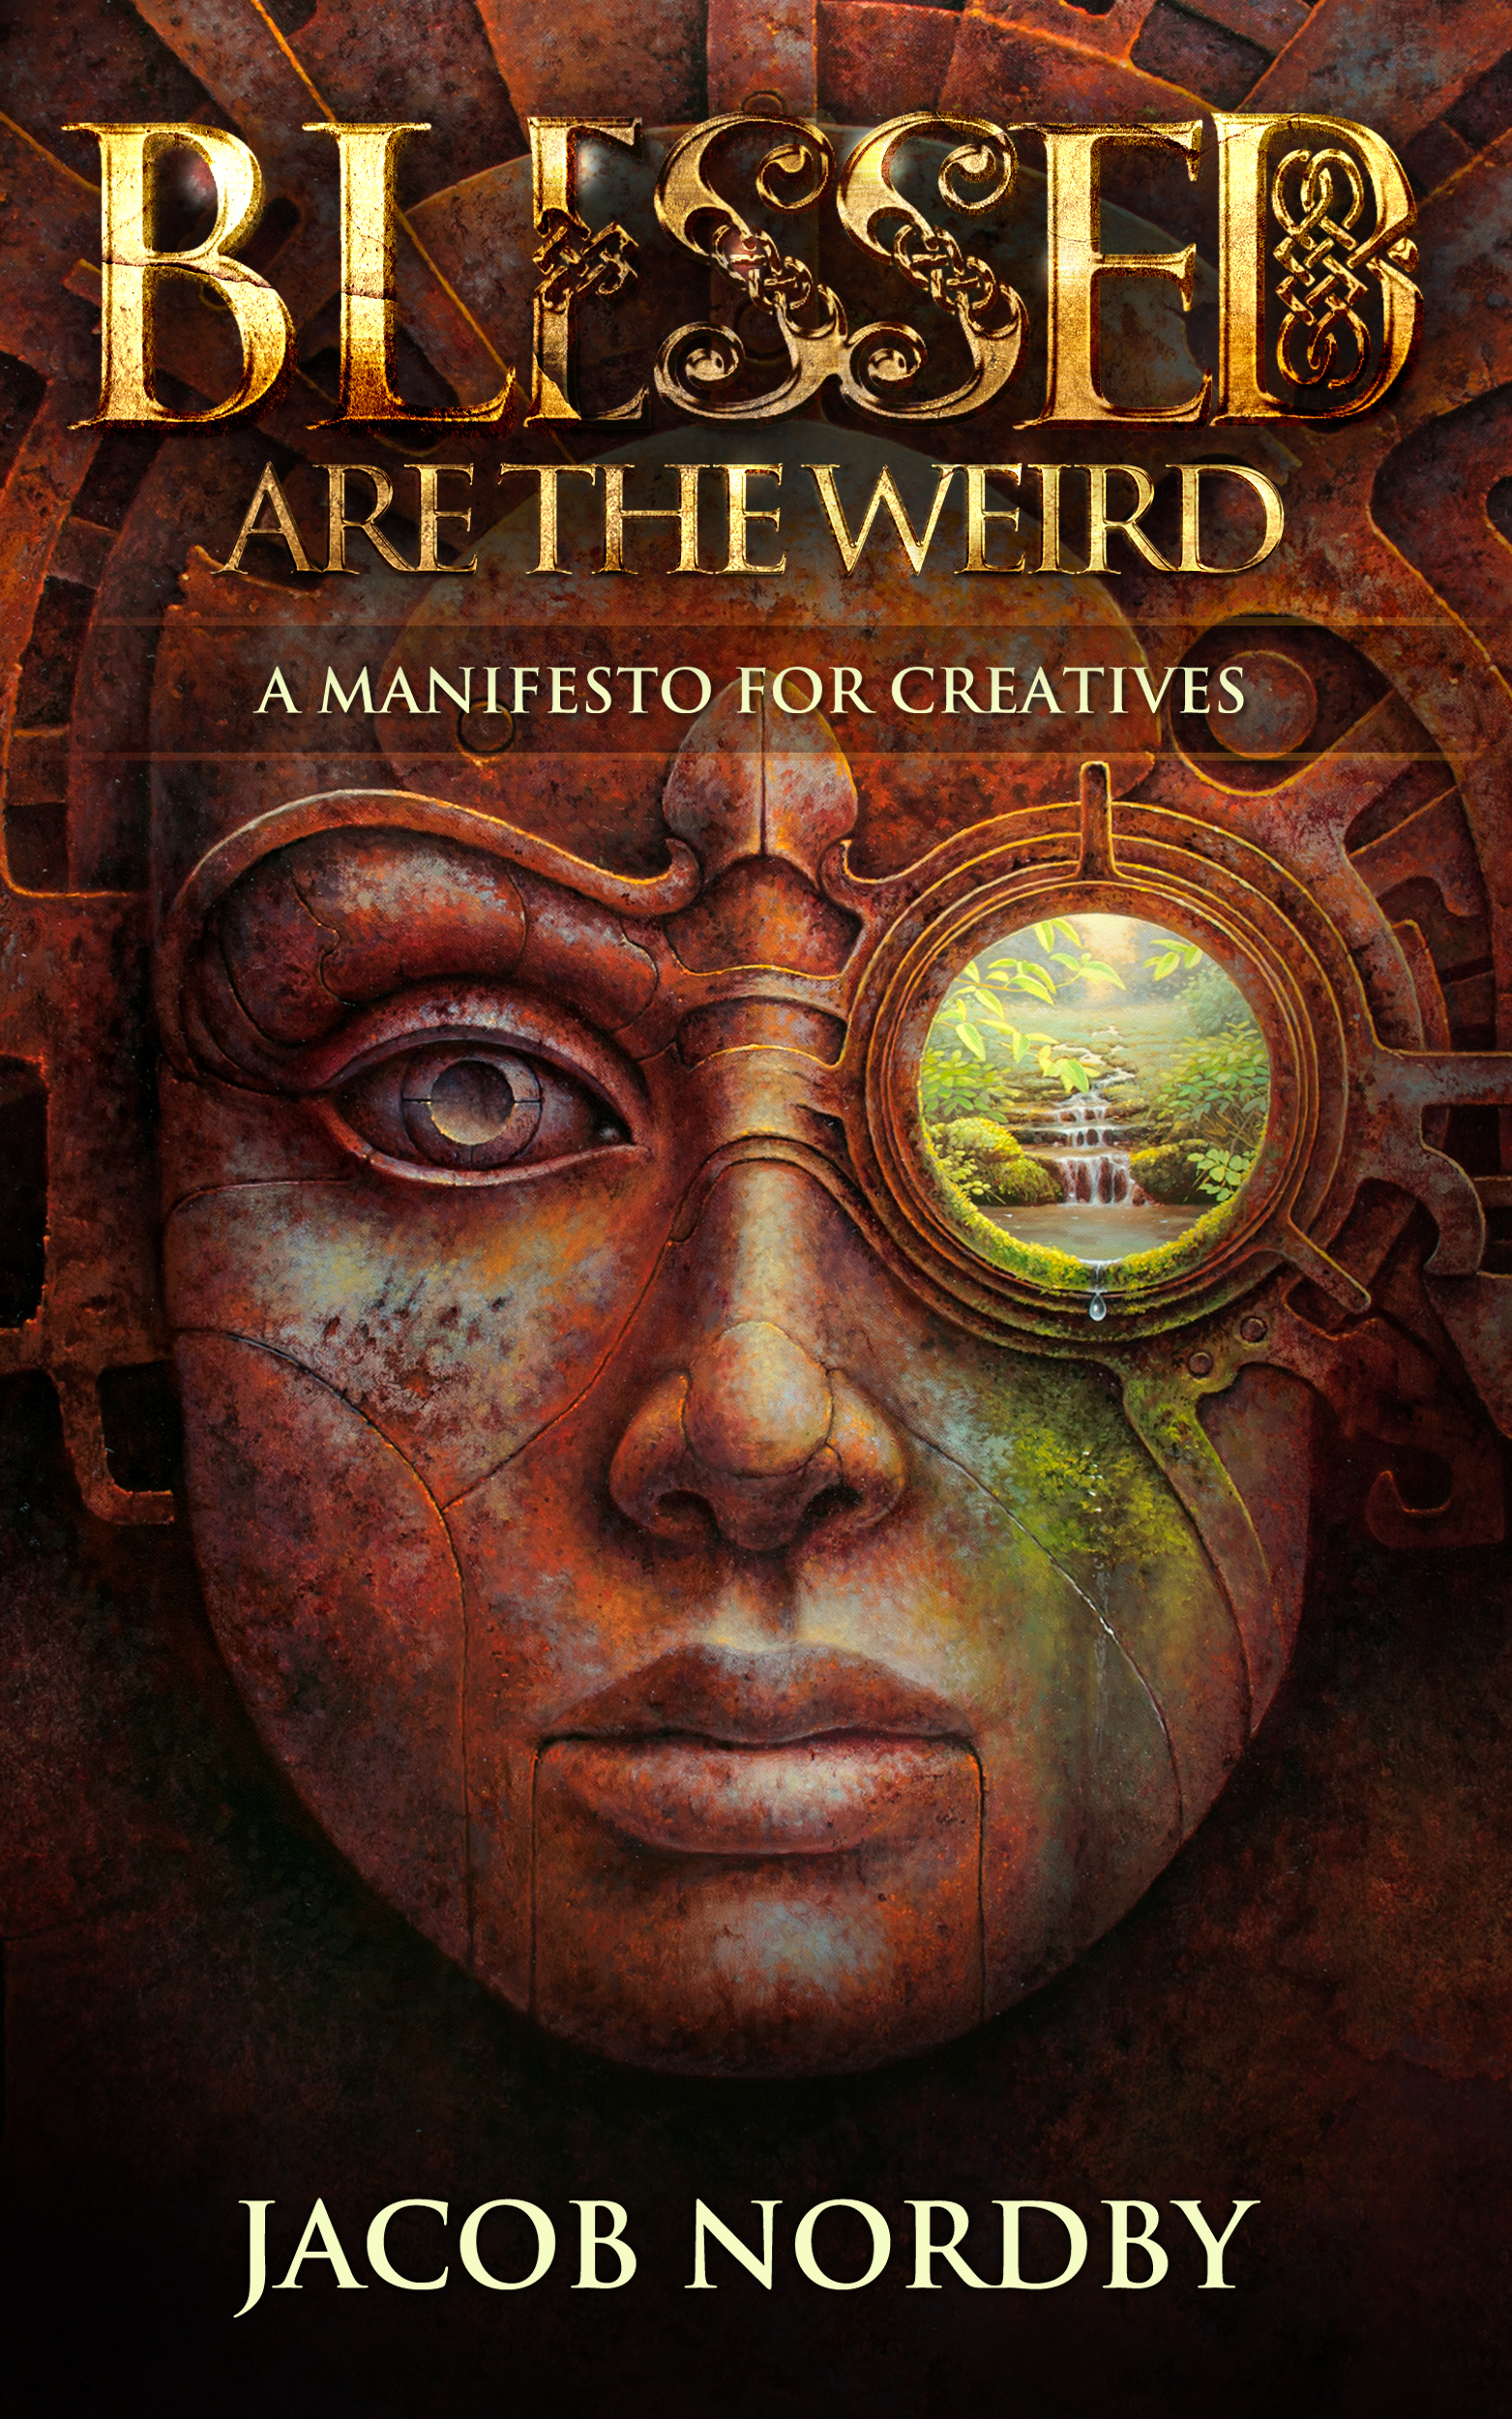 Blessed Are the Weird  A Manifesto for Creatives (13 Oct 2016, Manifesto Publishing House, Inc)